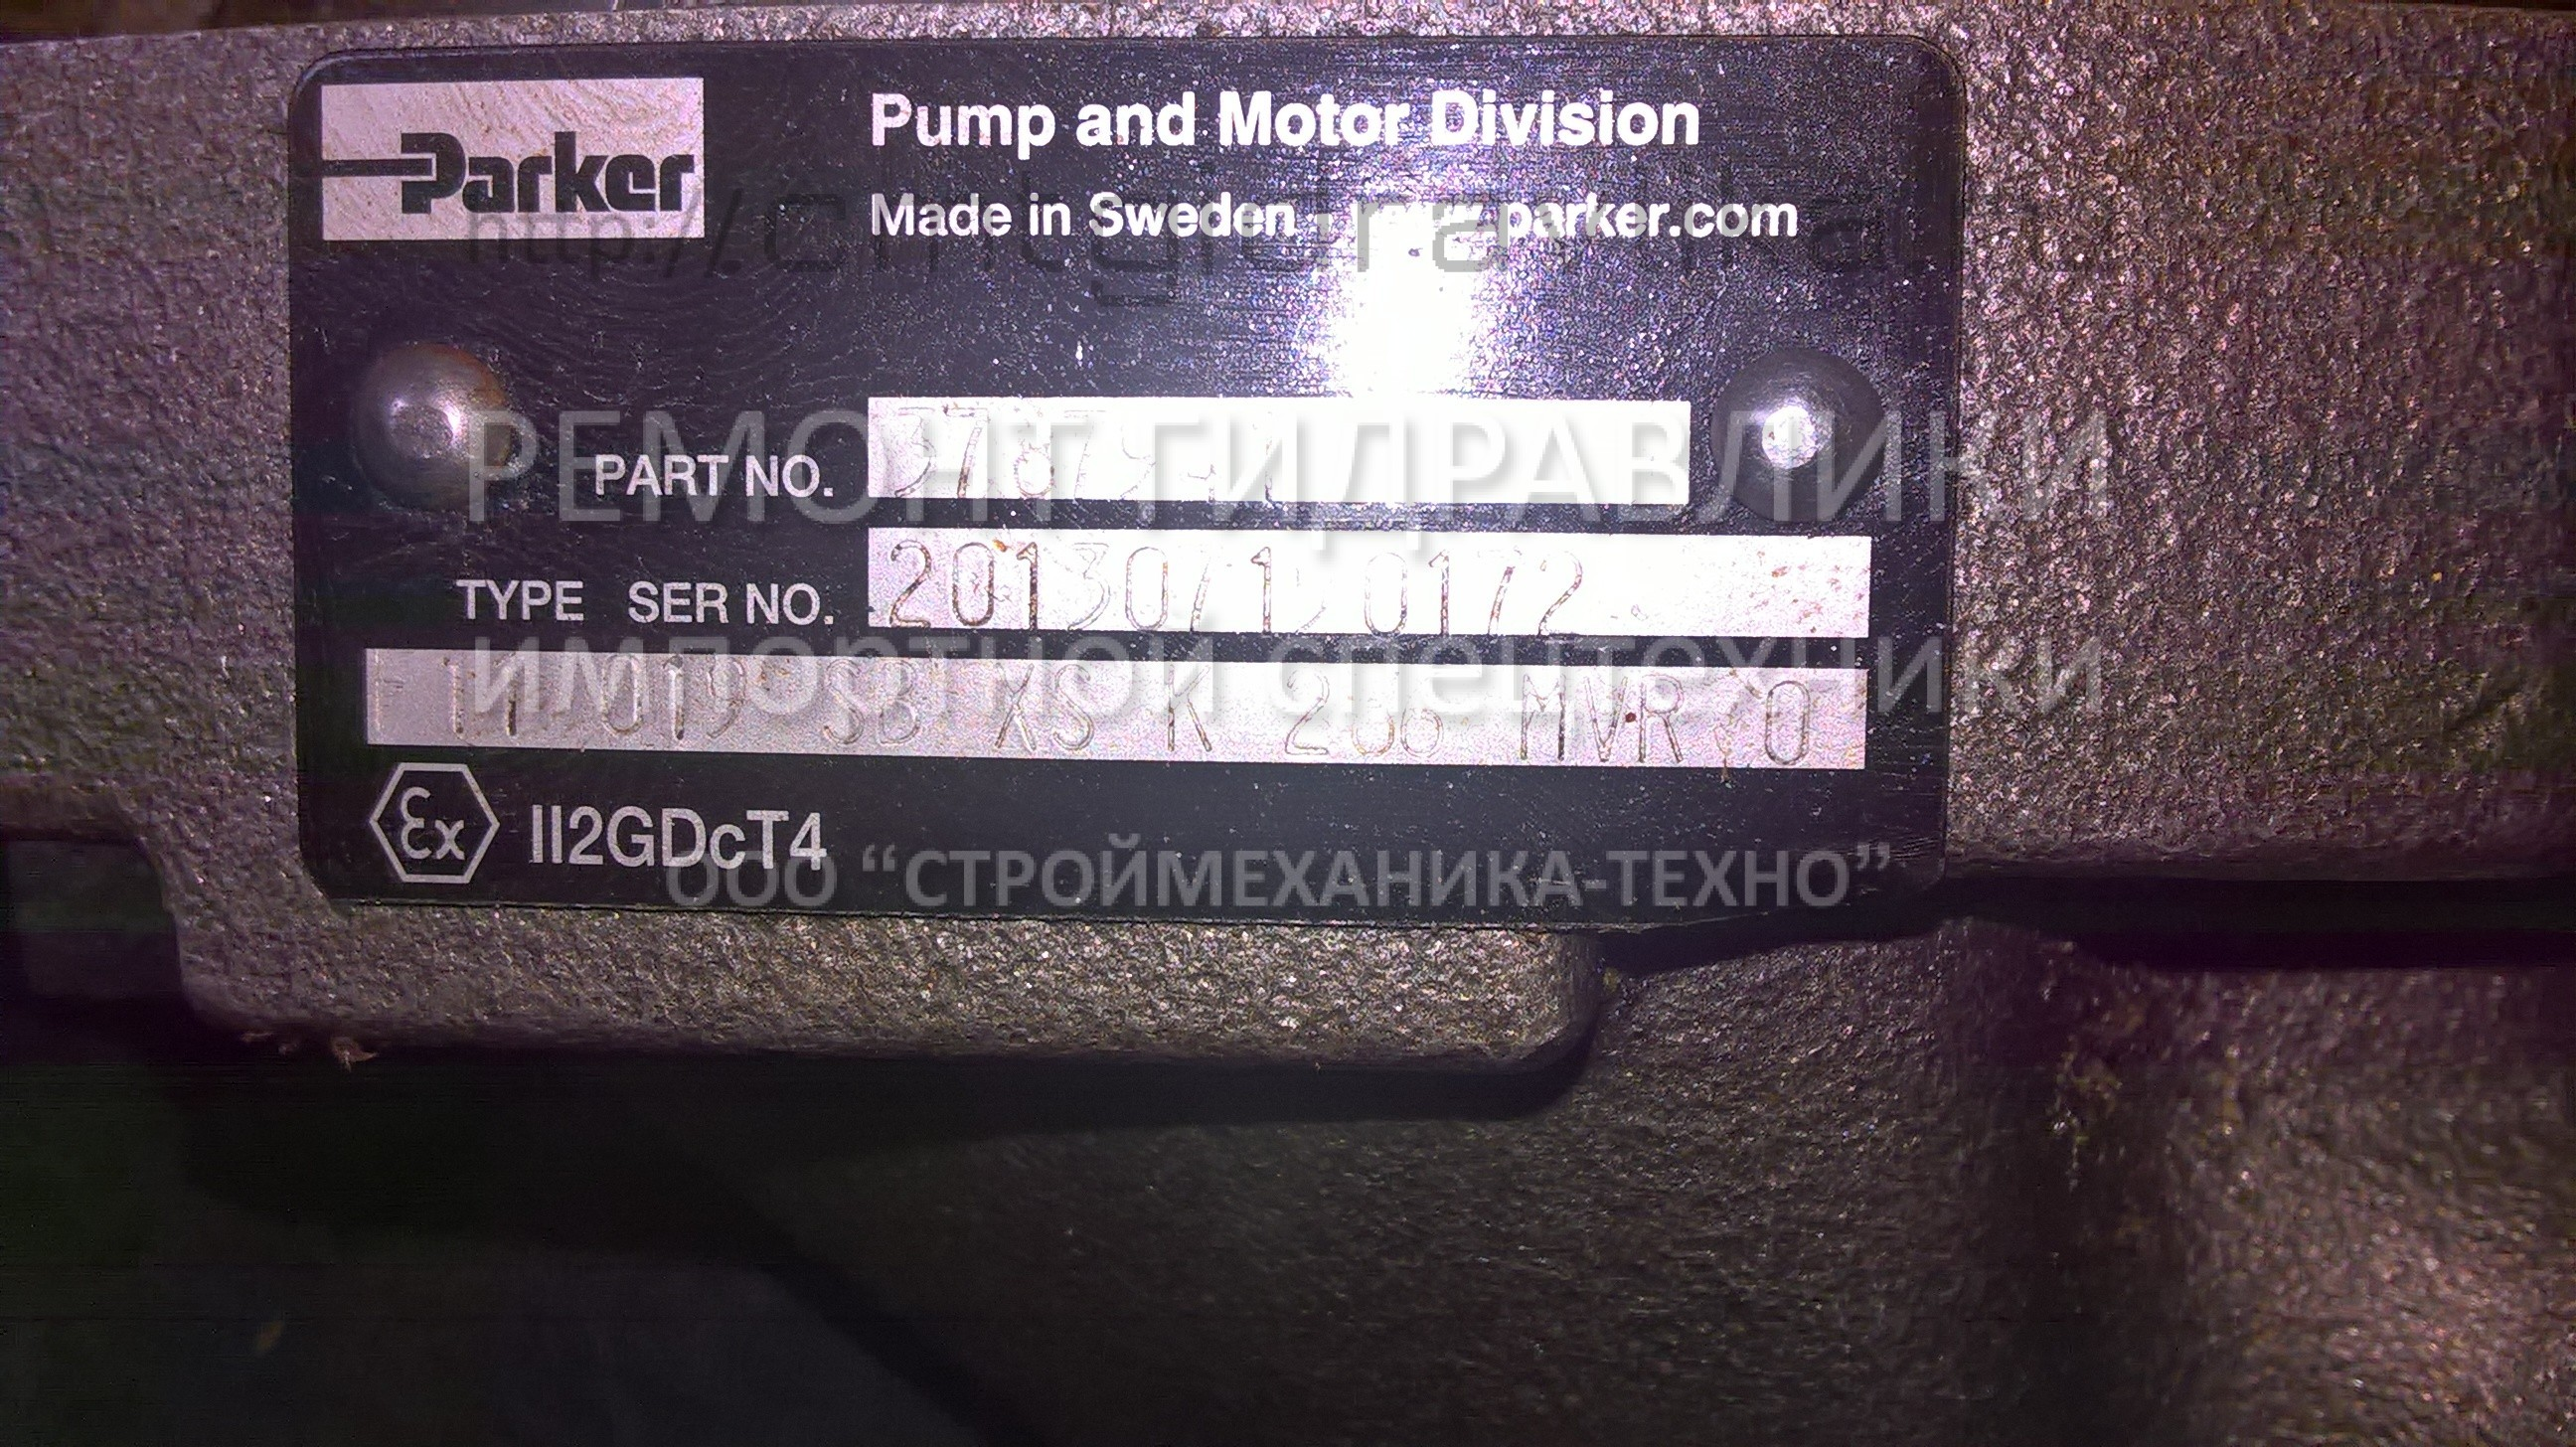 Parker pump and Motor Division